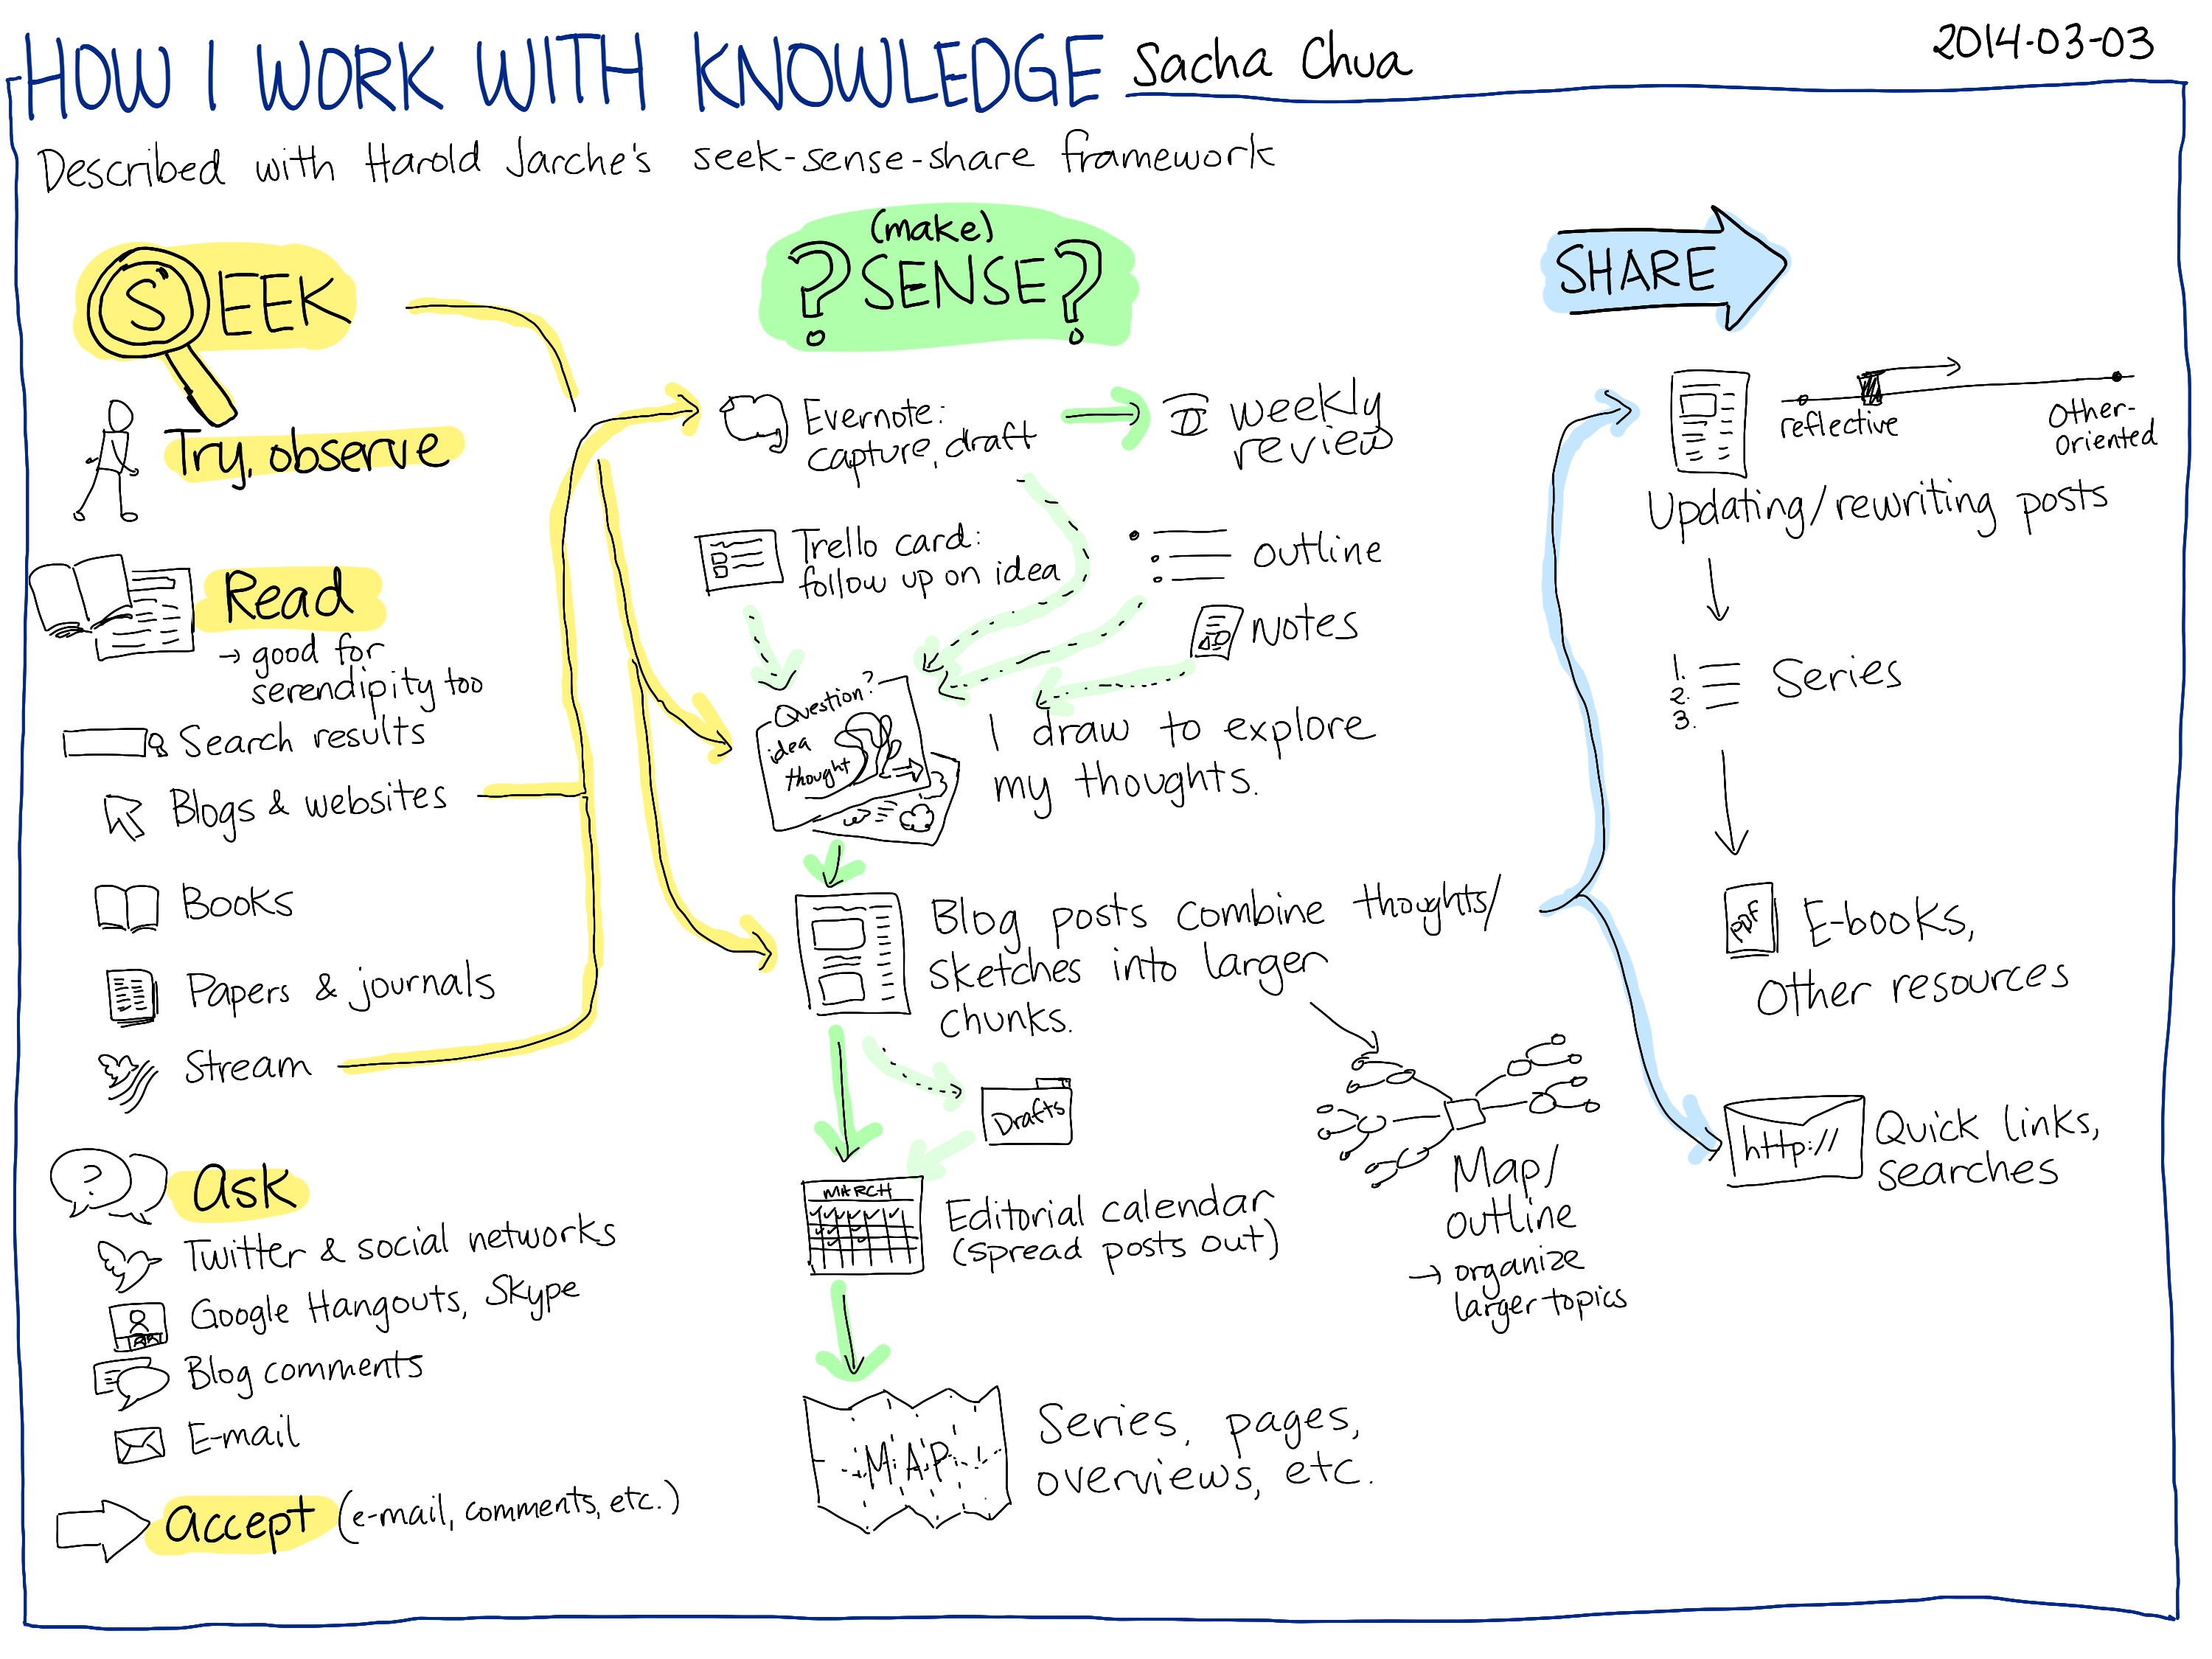 2014-03-03 How I work with knowledge - seek, sense, share #pkm.png